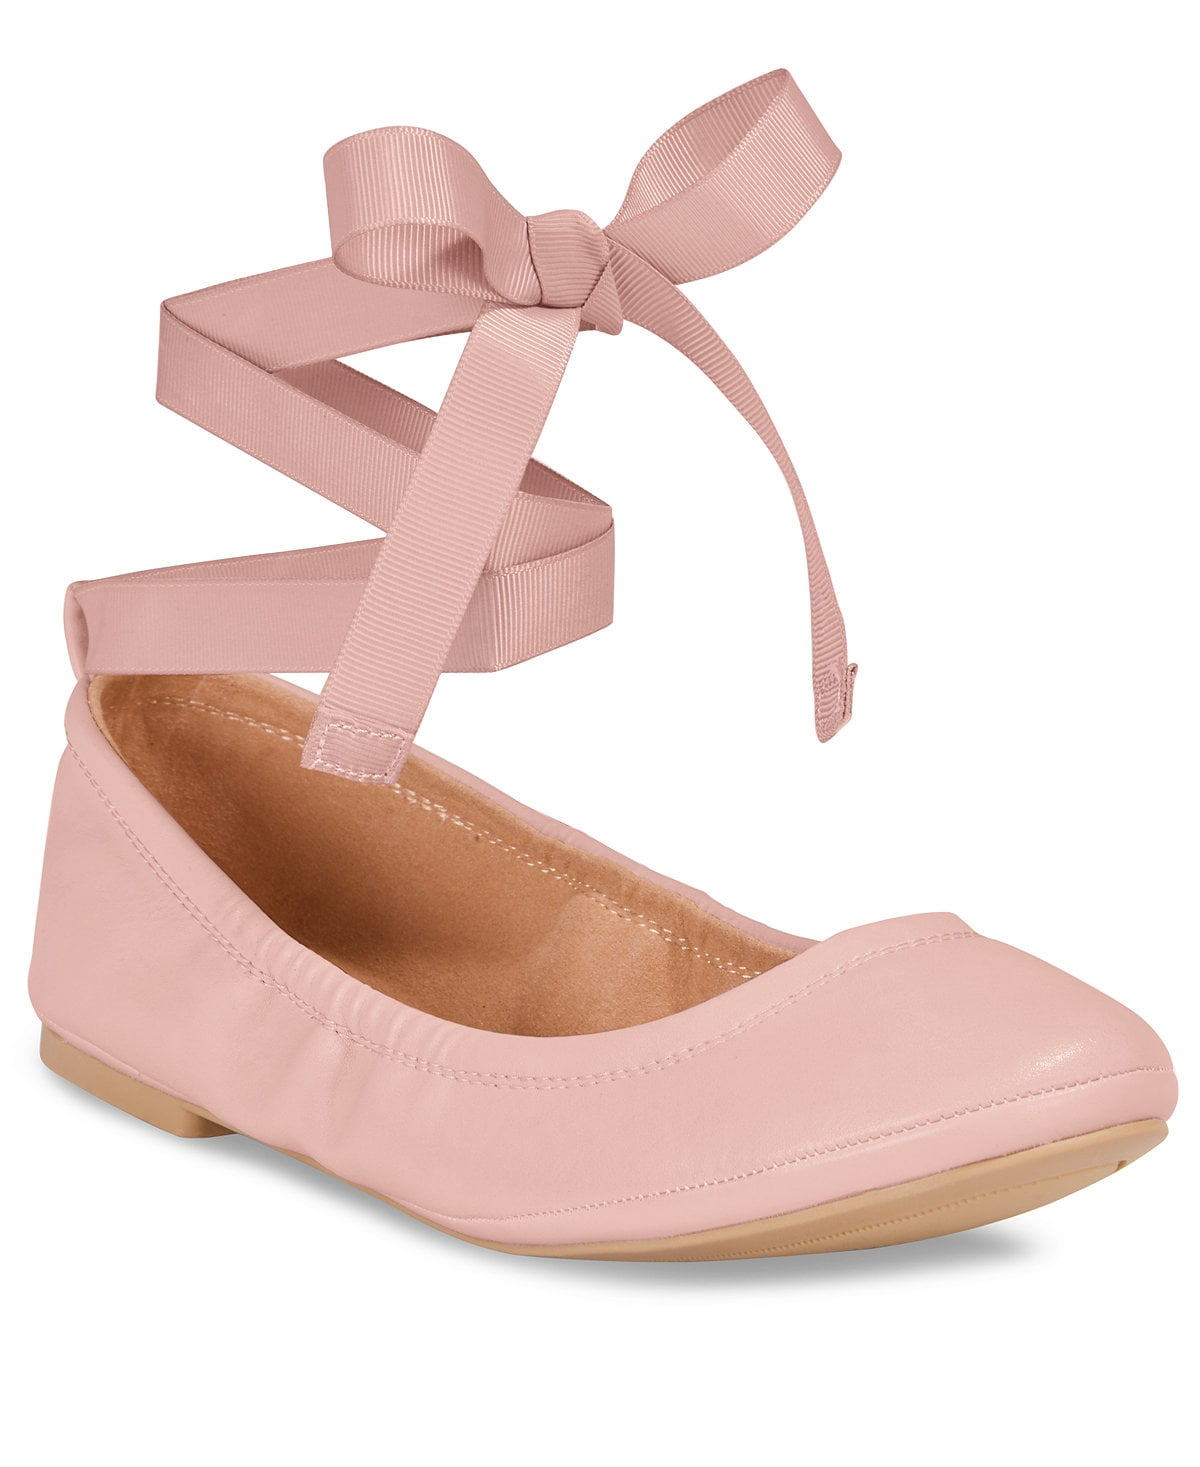 Spring Conboy Lace-Up Ballet Flats ($30